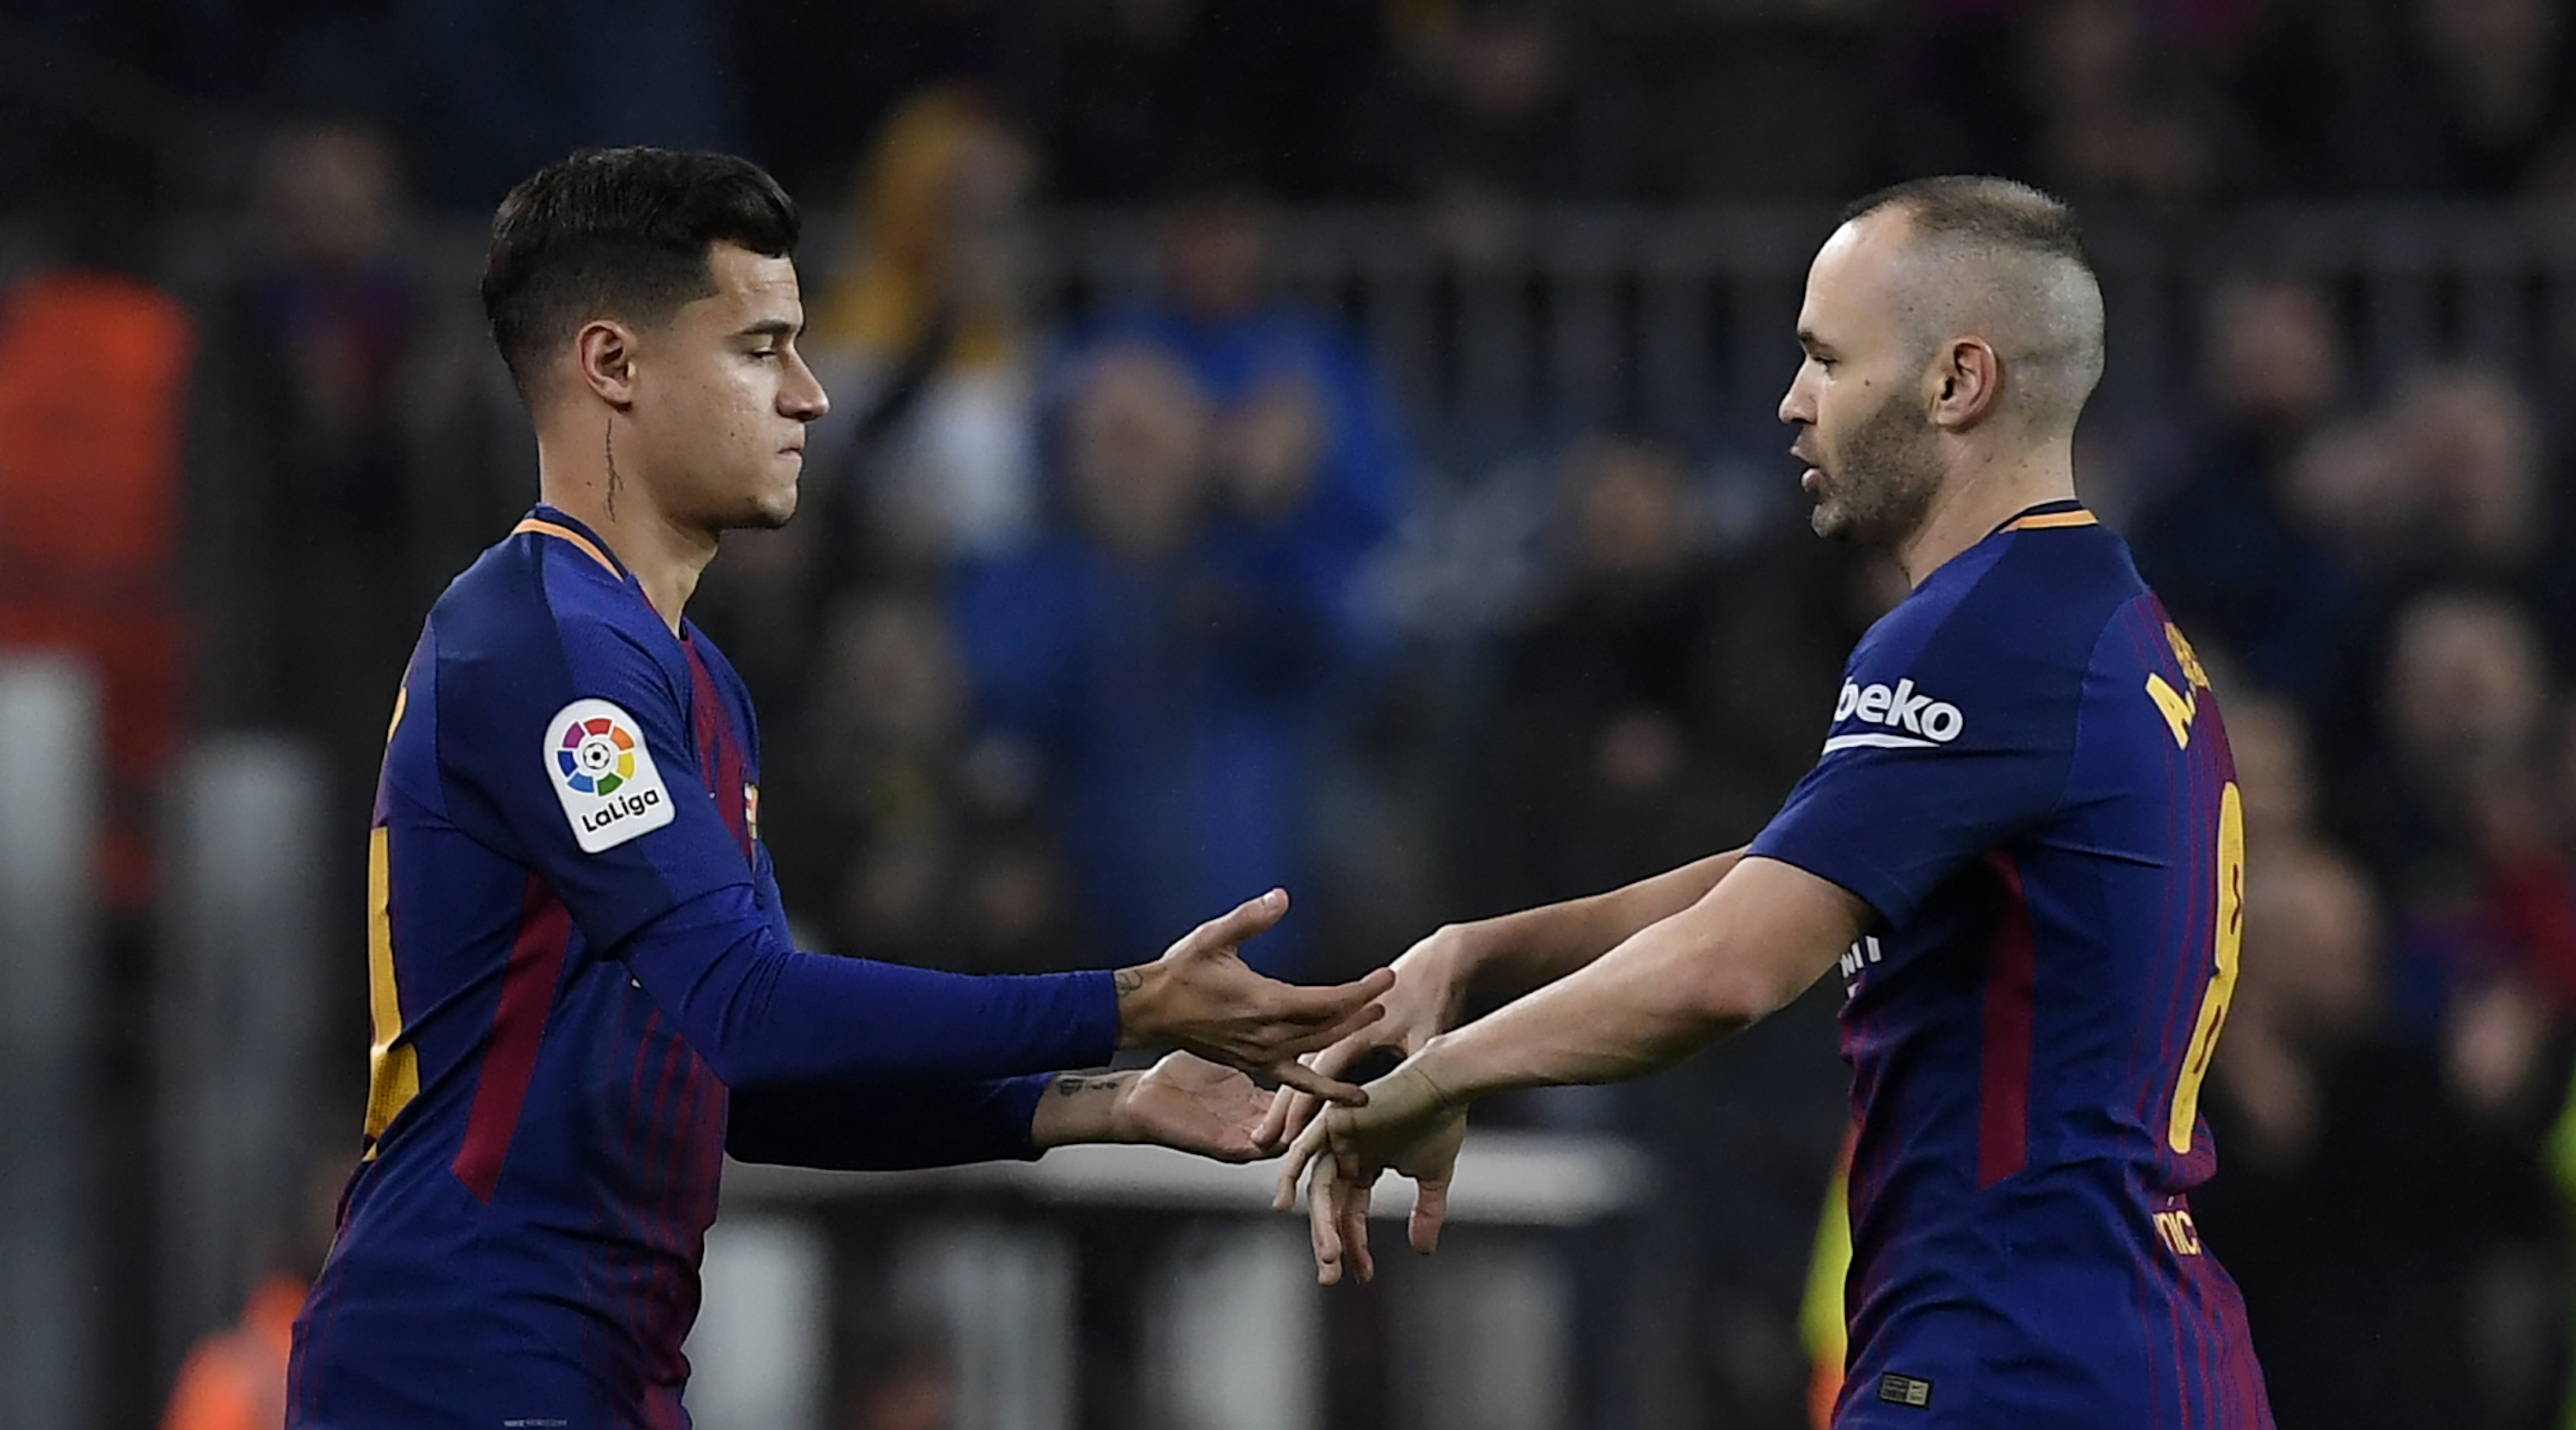 Barcelona's Brazilian midfielder Philippe Coutinho (L) replaces Barcelona's Spanish midfielder Andres Iniesta during the Spanish 'Copa del Rey' (King's cup) quarter-final second leg football match between FC Barcelona and RCD Espanyol at the Camp Nou stadium in Barcelona on January 25, 2018. / AFP PHOTO / LLUIS GENE (Photo credit should read LLUIS GENE/AFP/Getty Images)